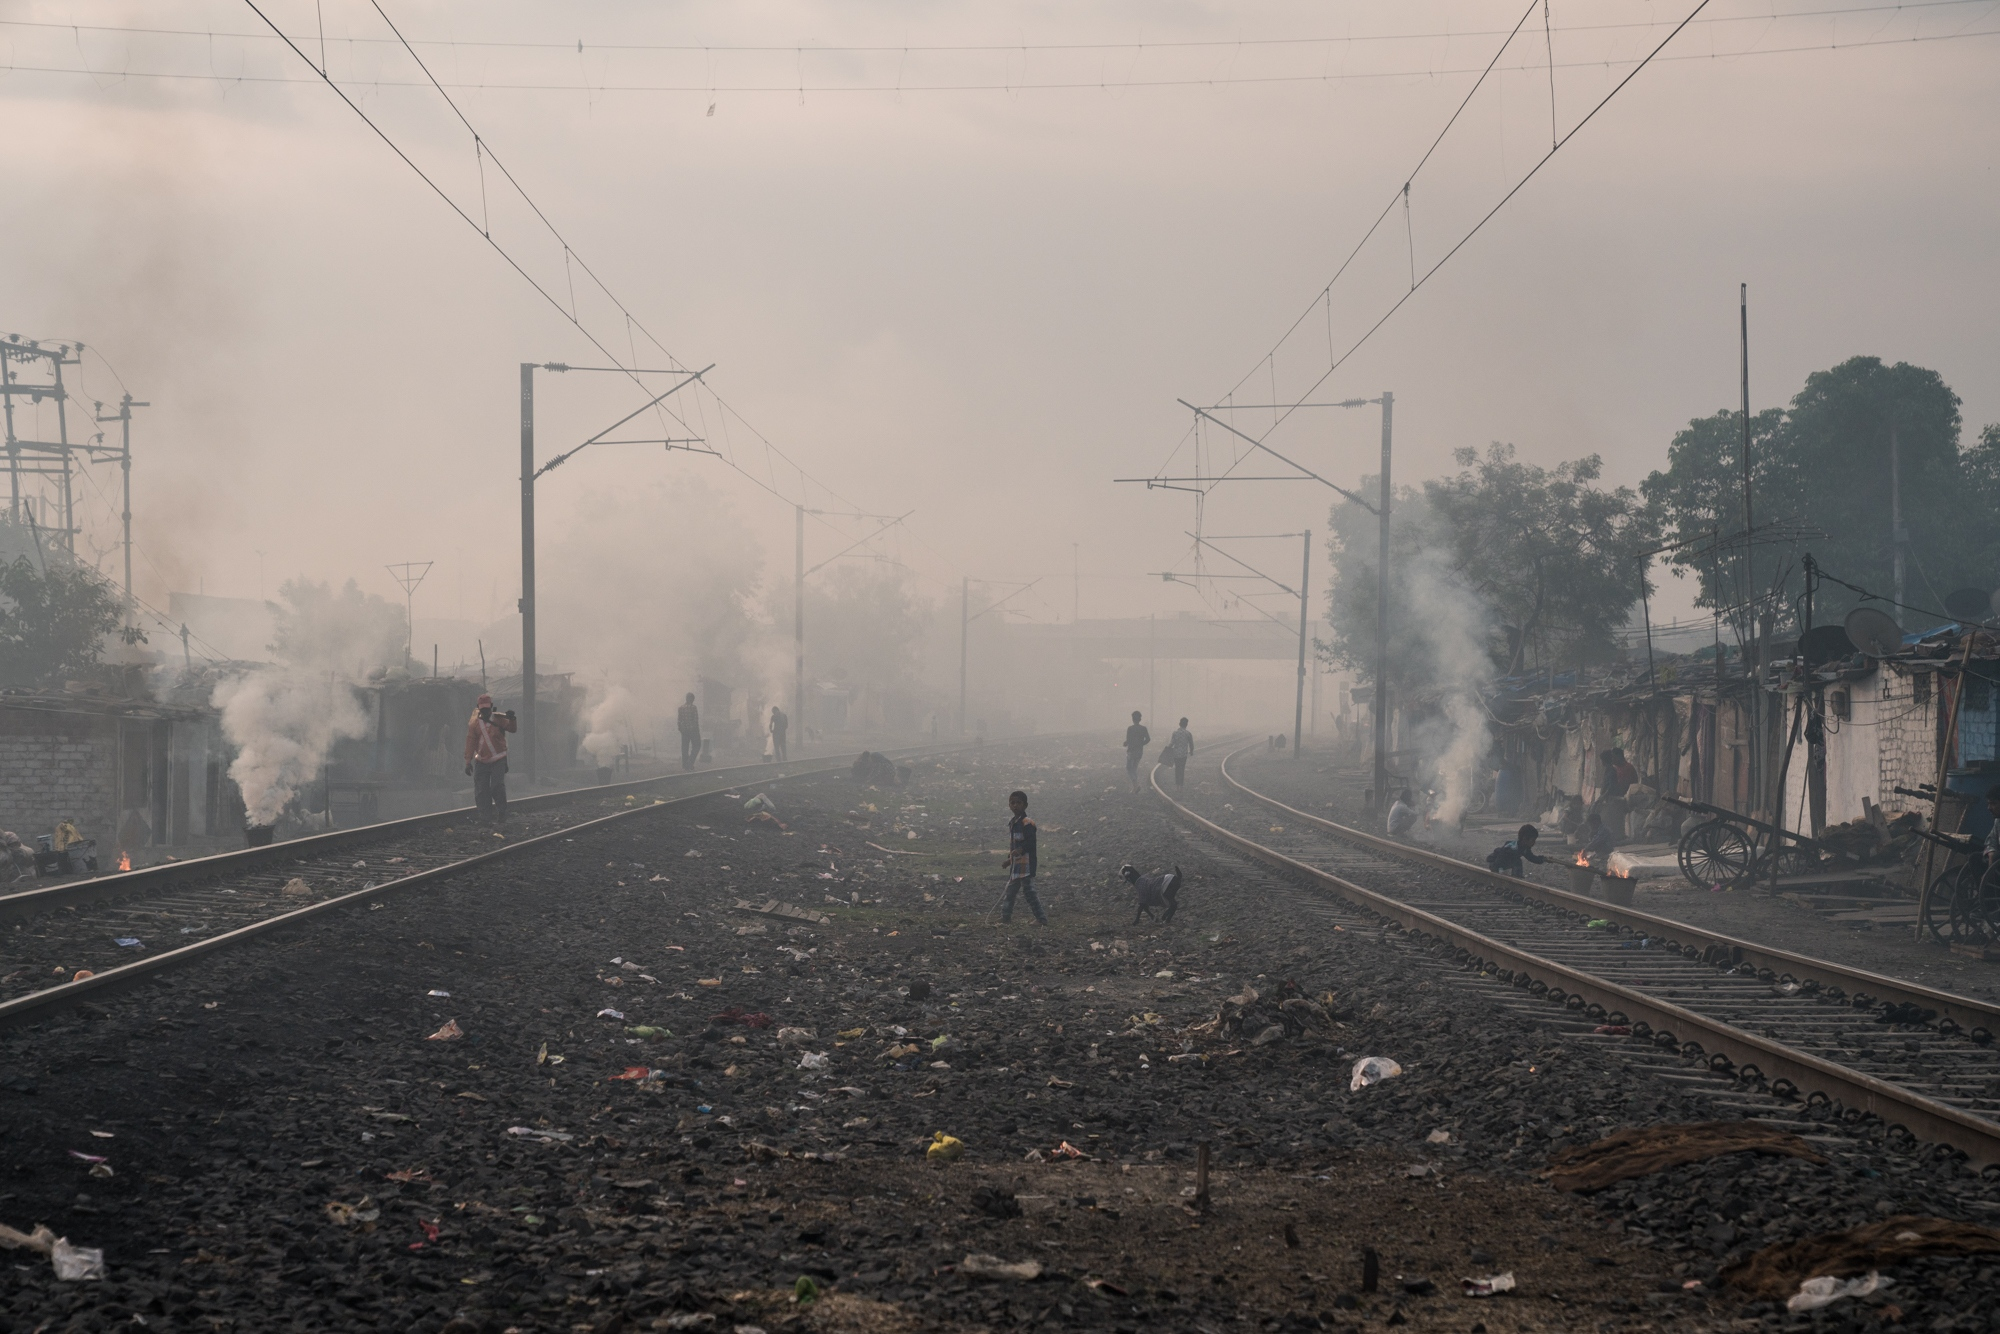 Smoke from hundreds of cooking fires blanket an urban area in Central India creating a brown haze during dawn.